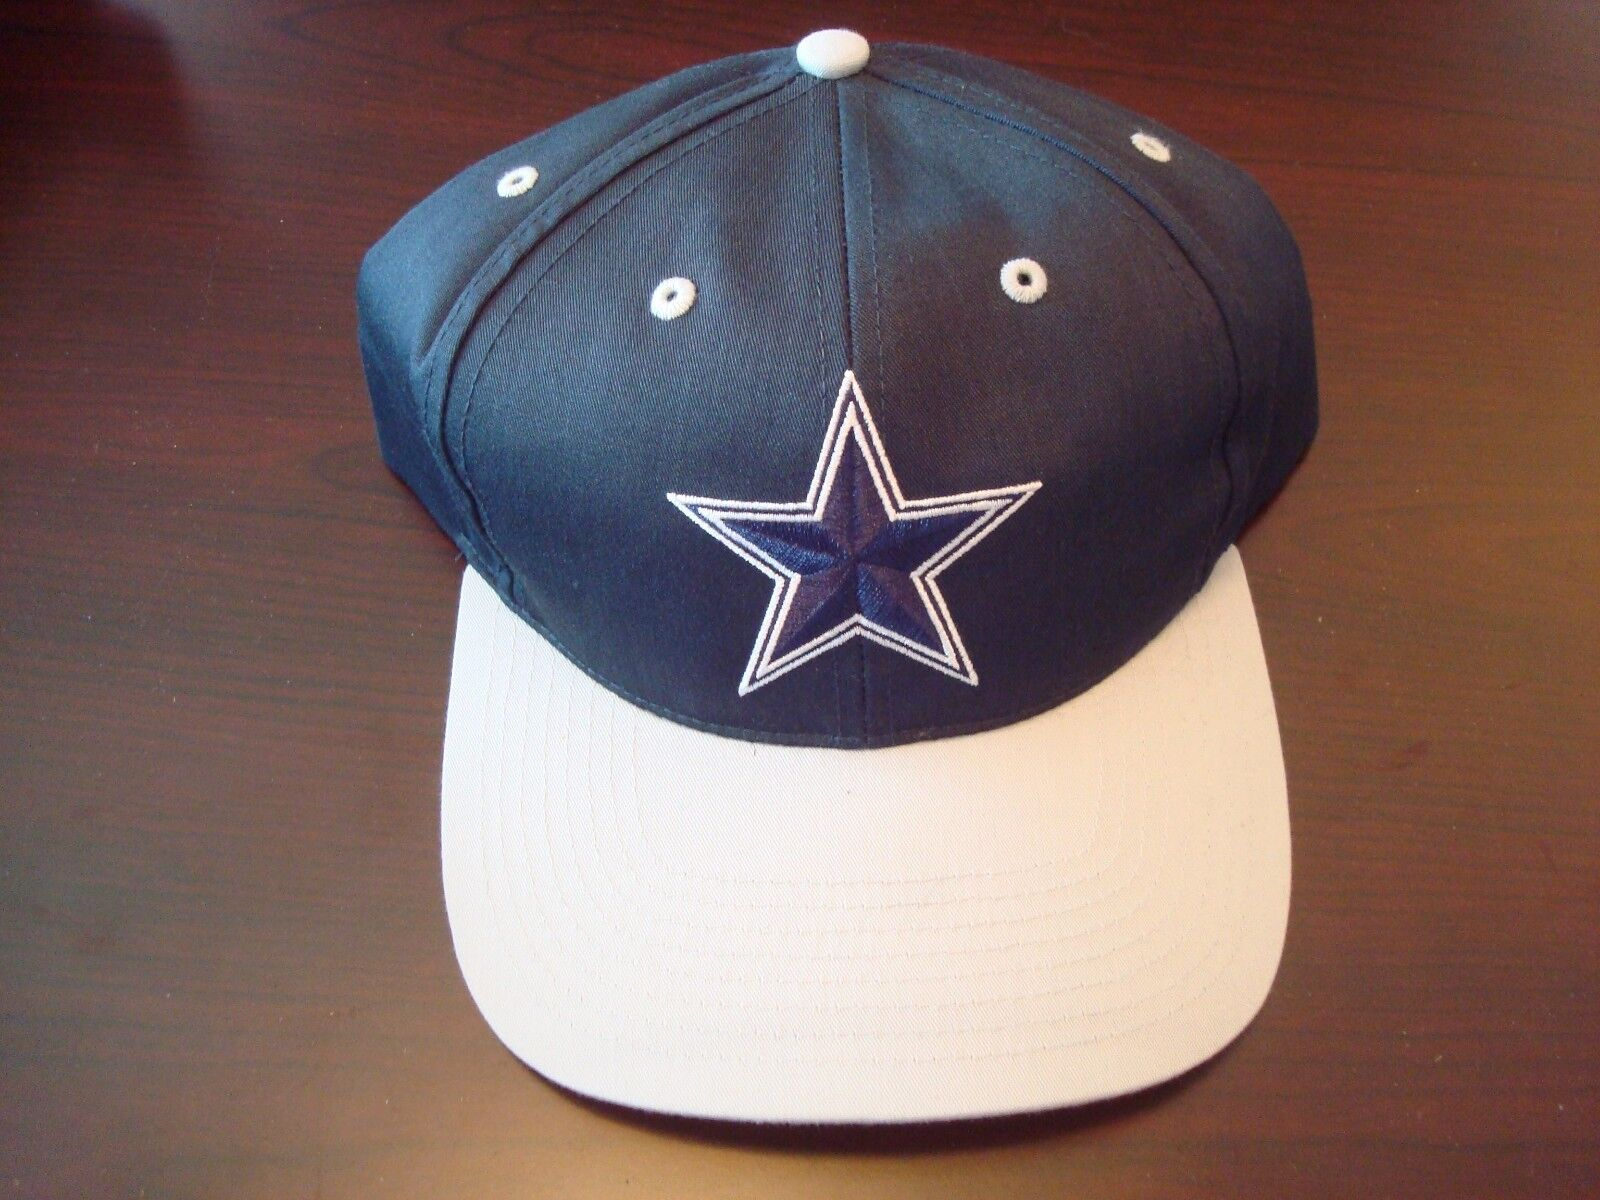 bd1d82f84bc066 where to buy dallas 90s cowboys twins star script new vintage 90s dallas  hat cap snapback